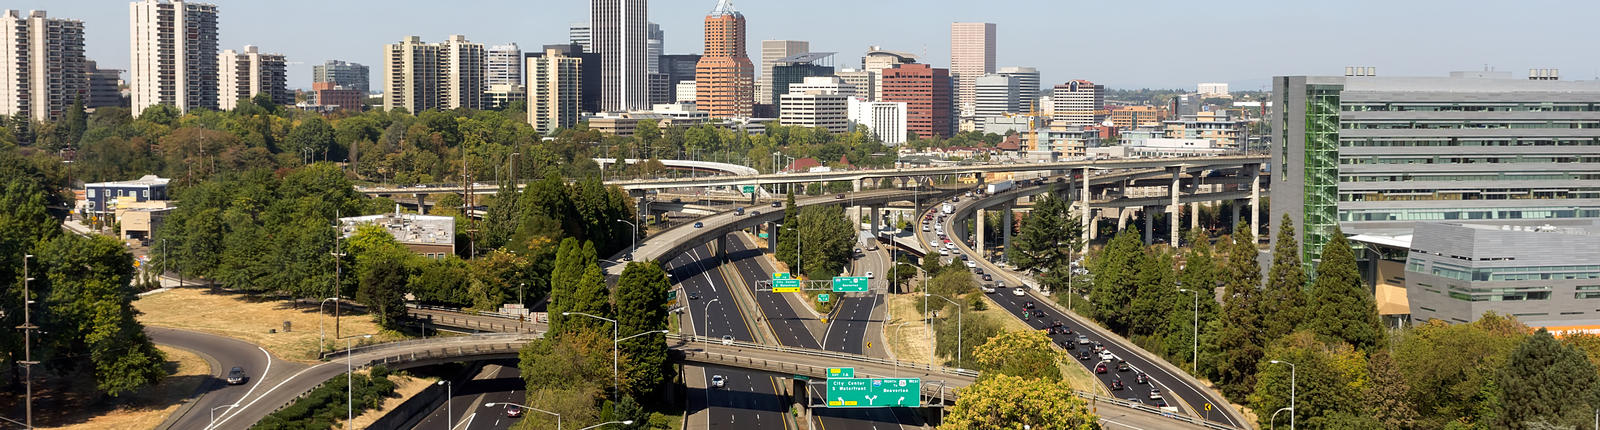 Portland Business Alliance - Transportation Initiatives